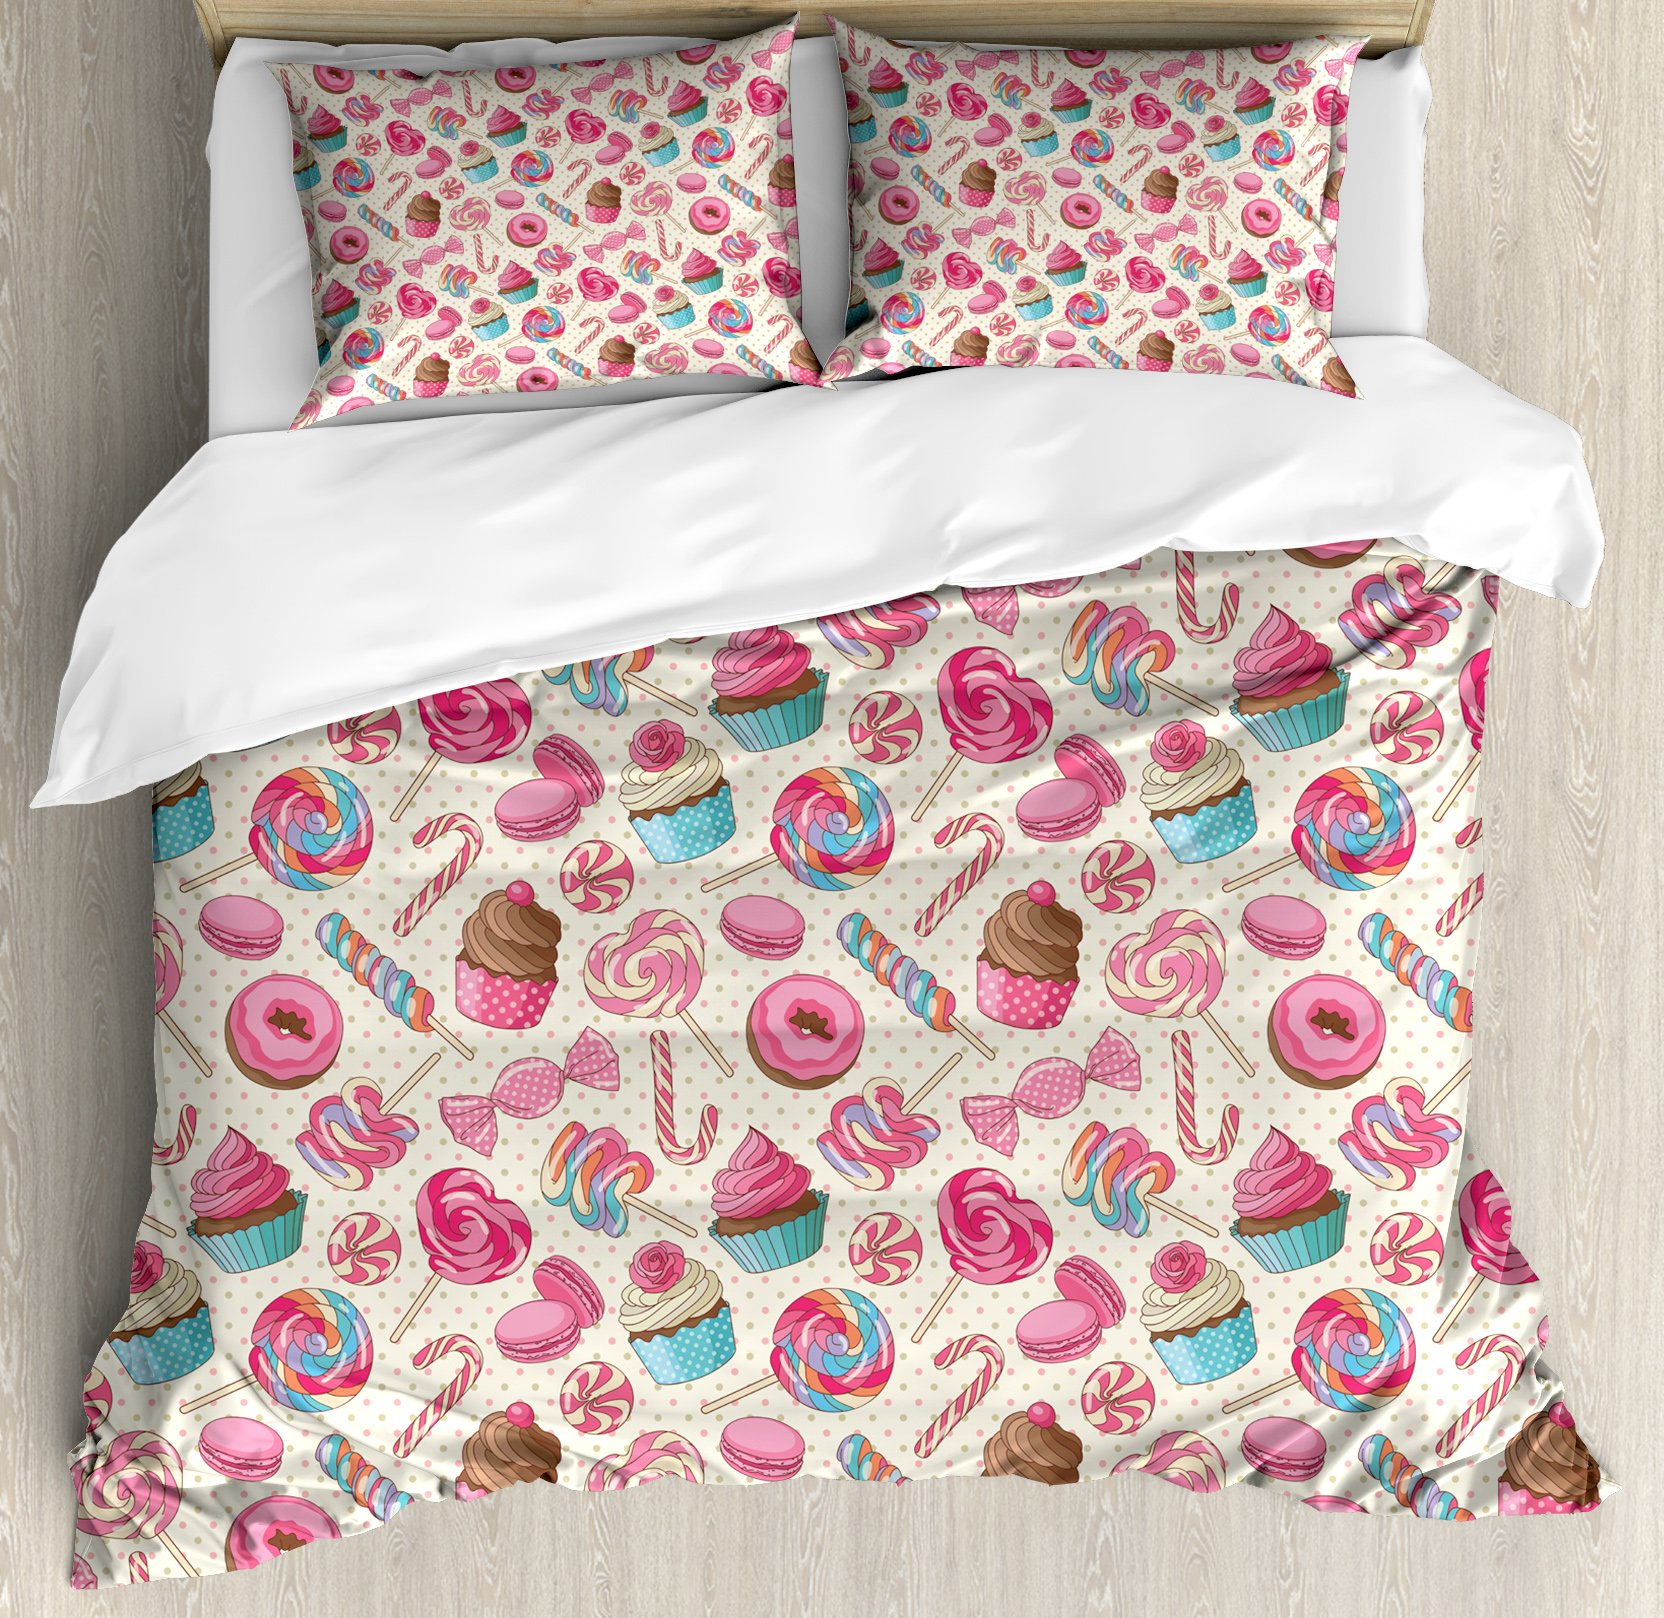 Ambesonne Candy Cane Duvet Cover Set, Yummy Lollipop Candy Macaroon Cupcake and Donut on Polka Dots Pattern, Decorative 3 Piece Bedding Set with 2 Pillow Shams, Queen Size, Pink Cream by Ambesonne